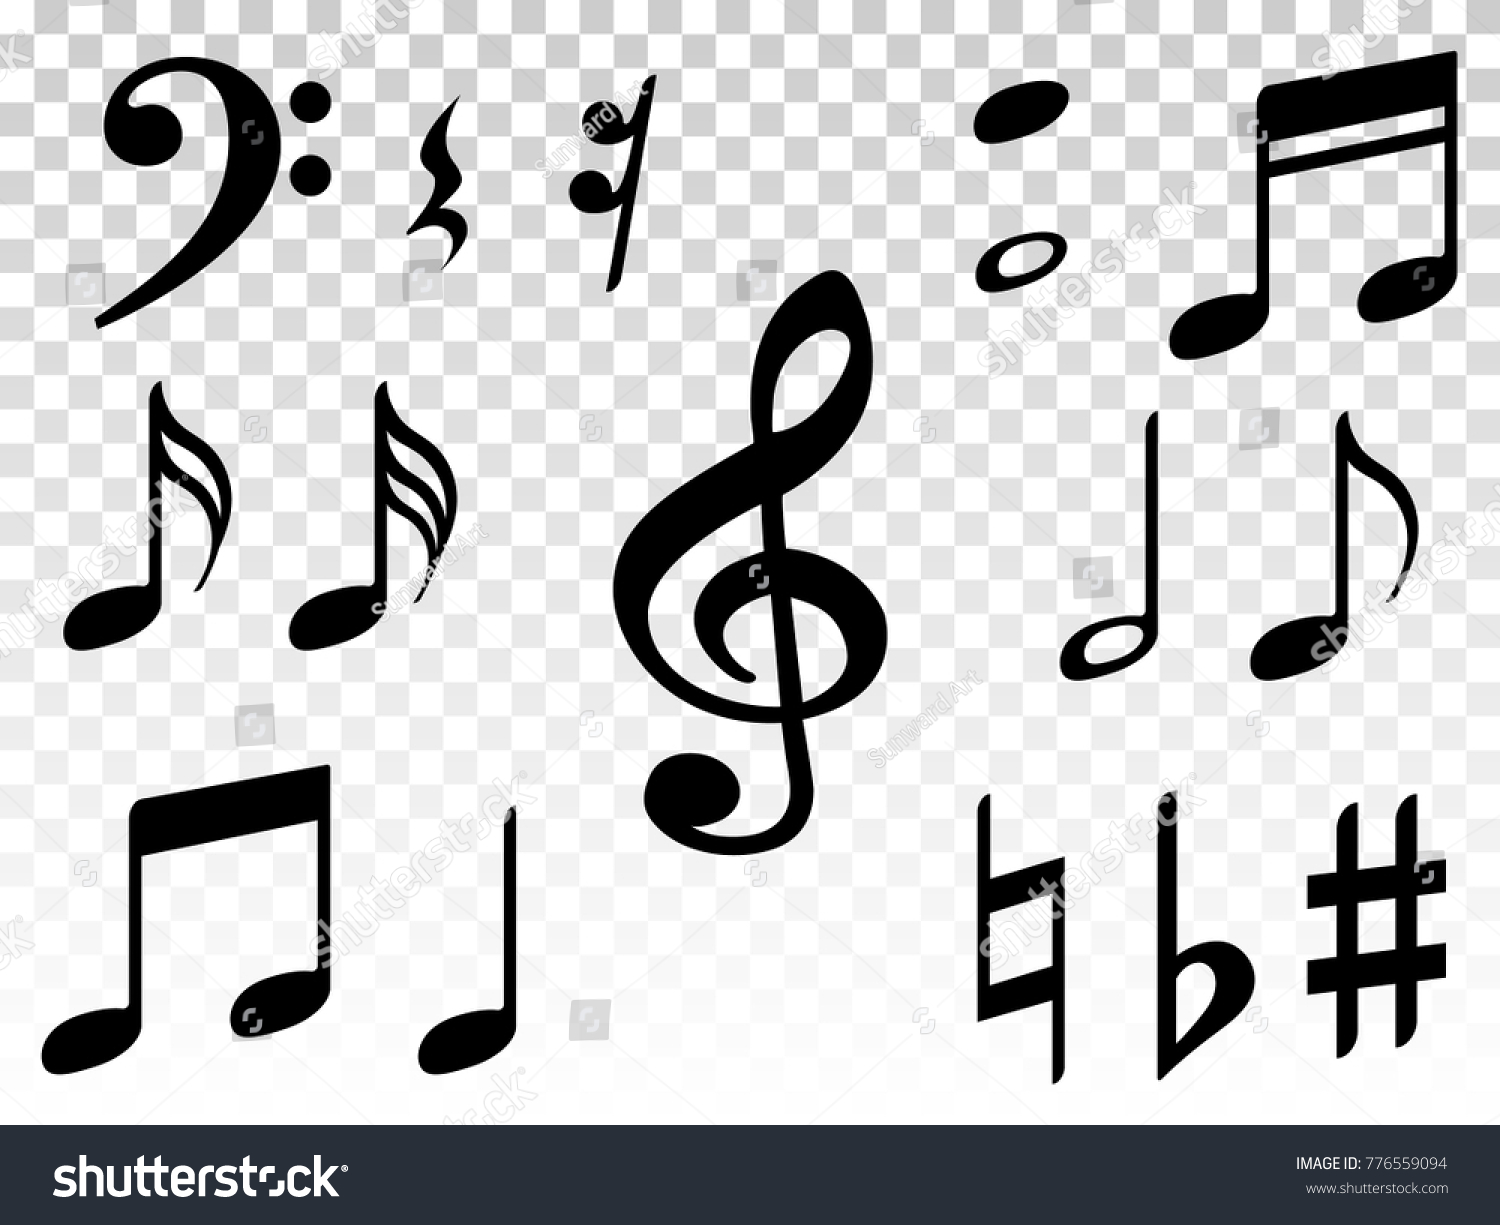 Music note icons vector set black stock vector 776559094 music note icons vector set black symphony or melody signs isolated on transparent background biocorpaavc Images